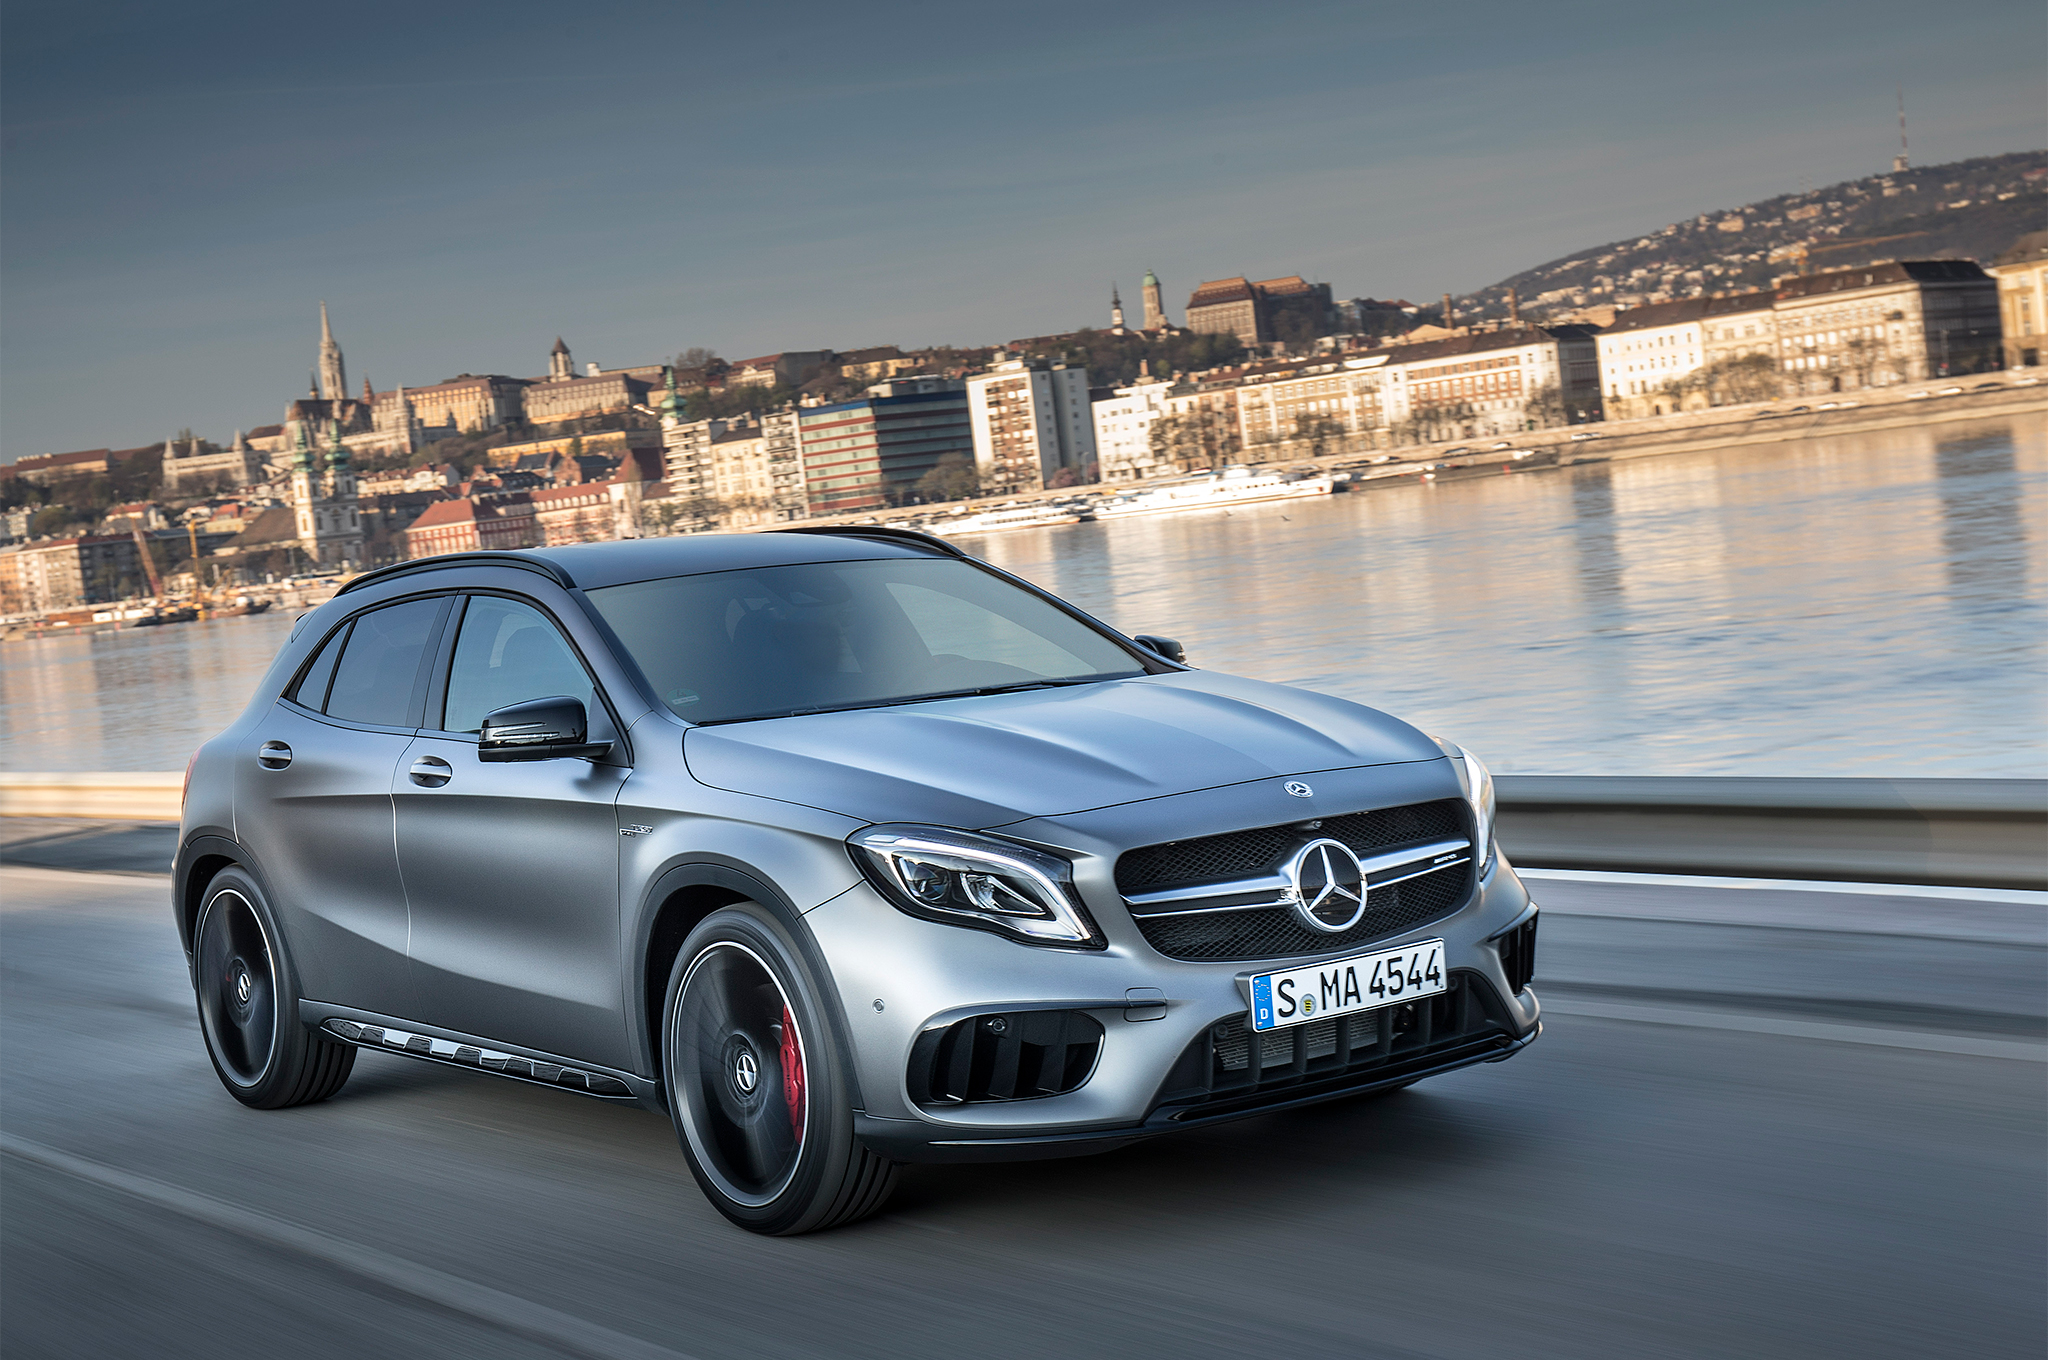 2018 mercedes benz gla class first drive review. Black Bedroom Furniture Sets. Home Design Ideas